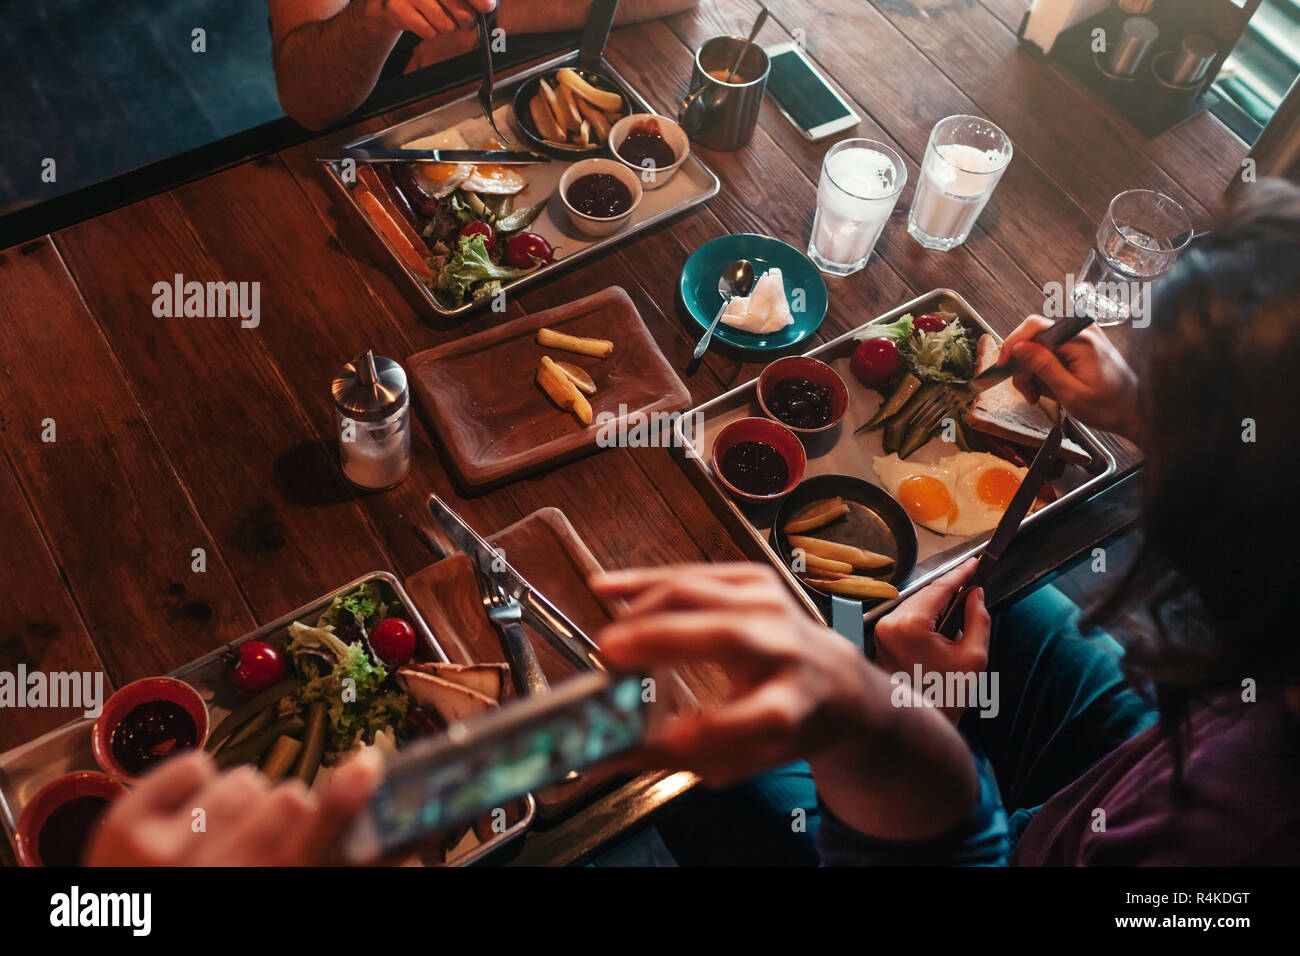 Young man takes a picture of his food on his phone for social network while having breakfast in cafe. Internet addiction concept. - Stock Image